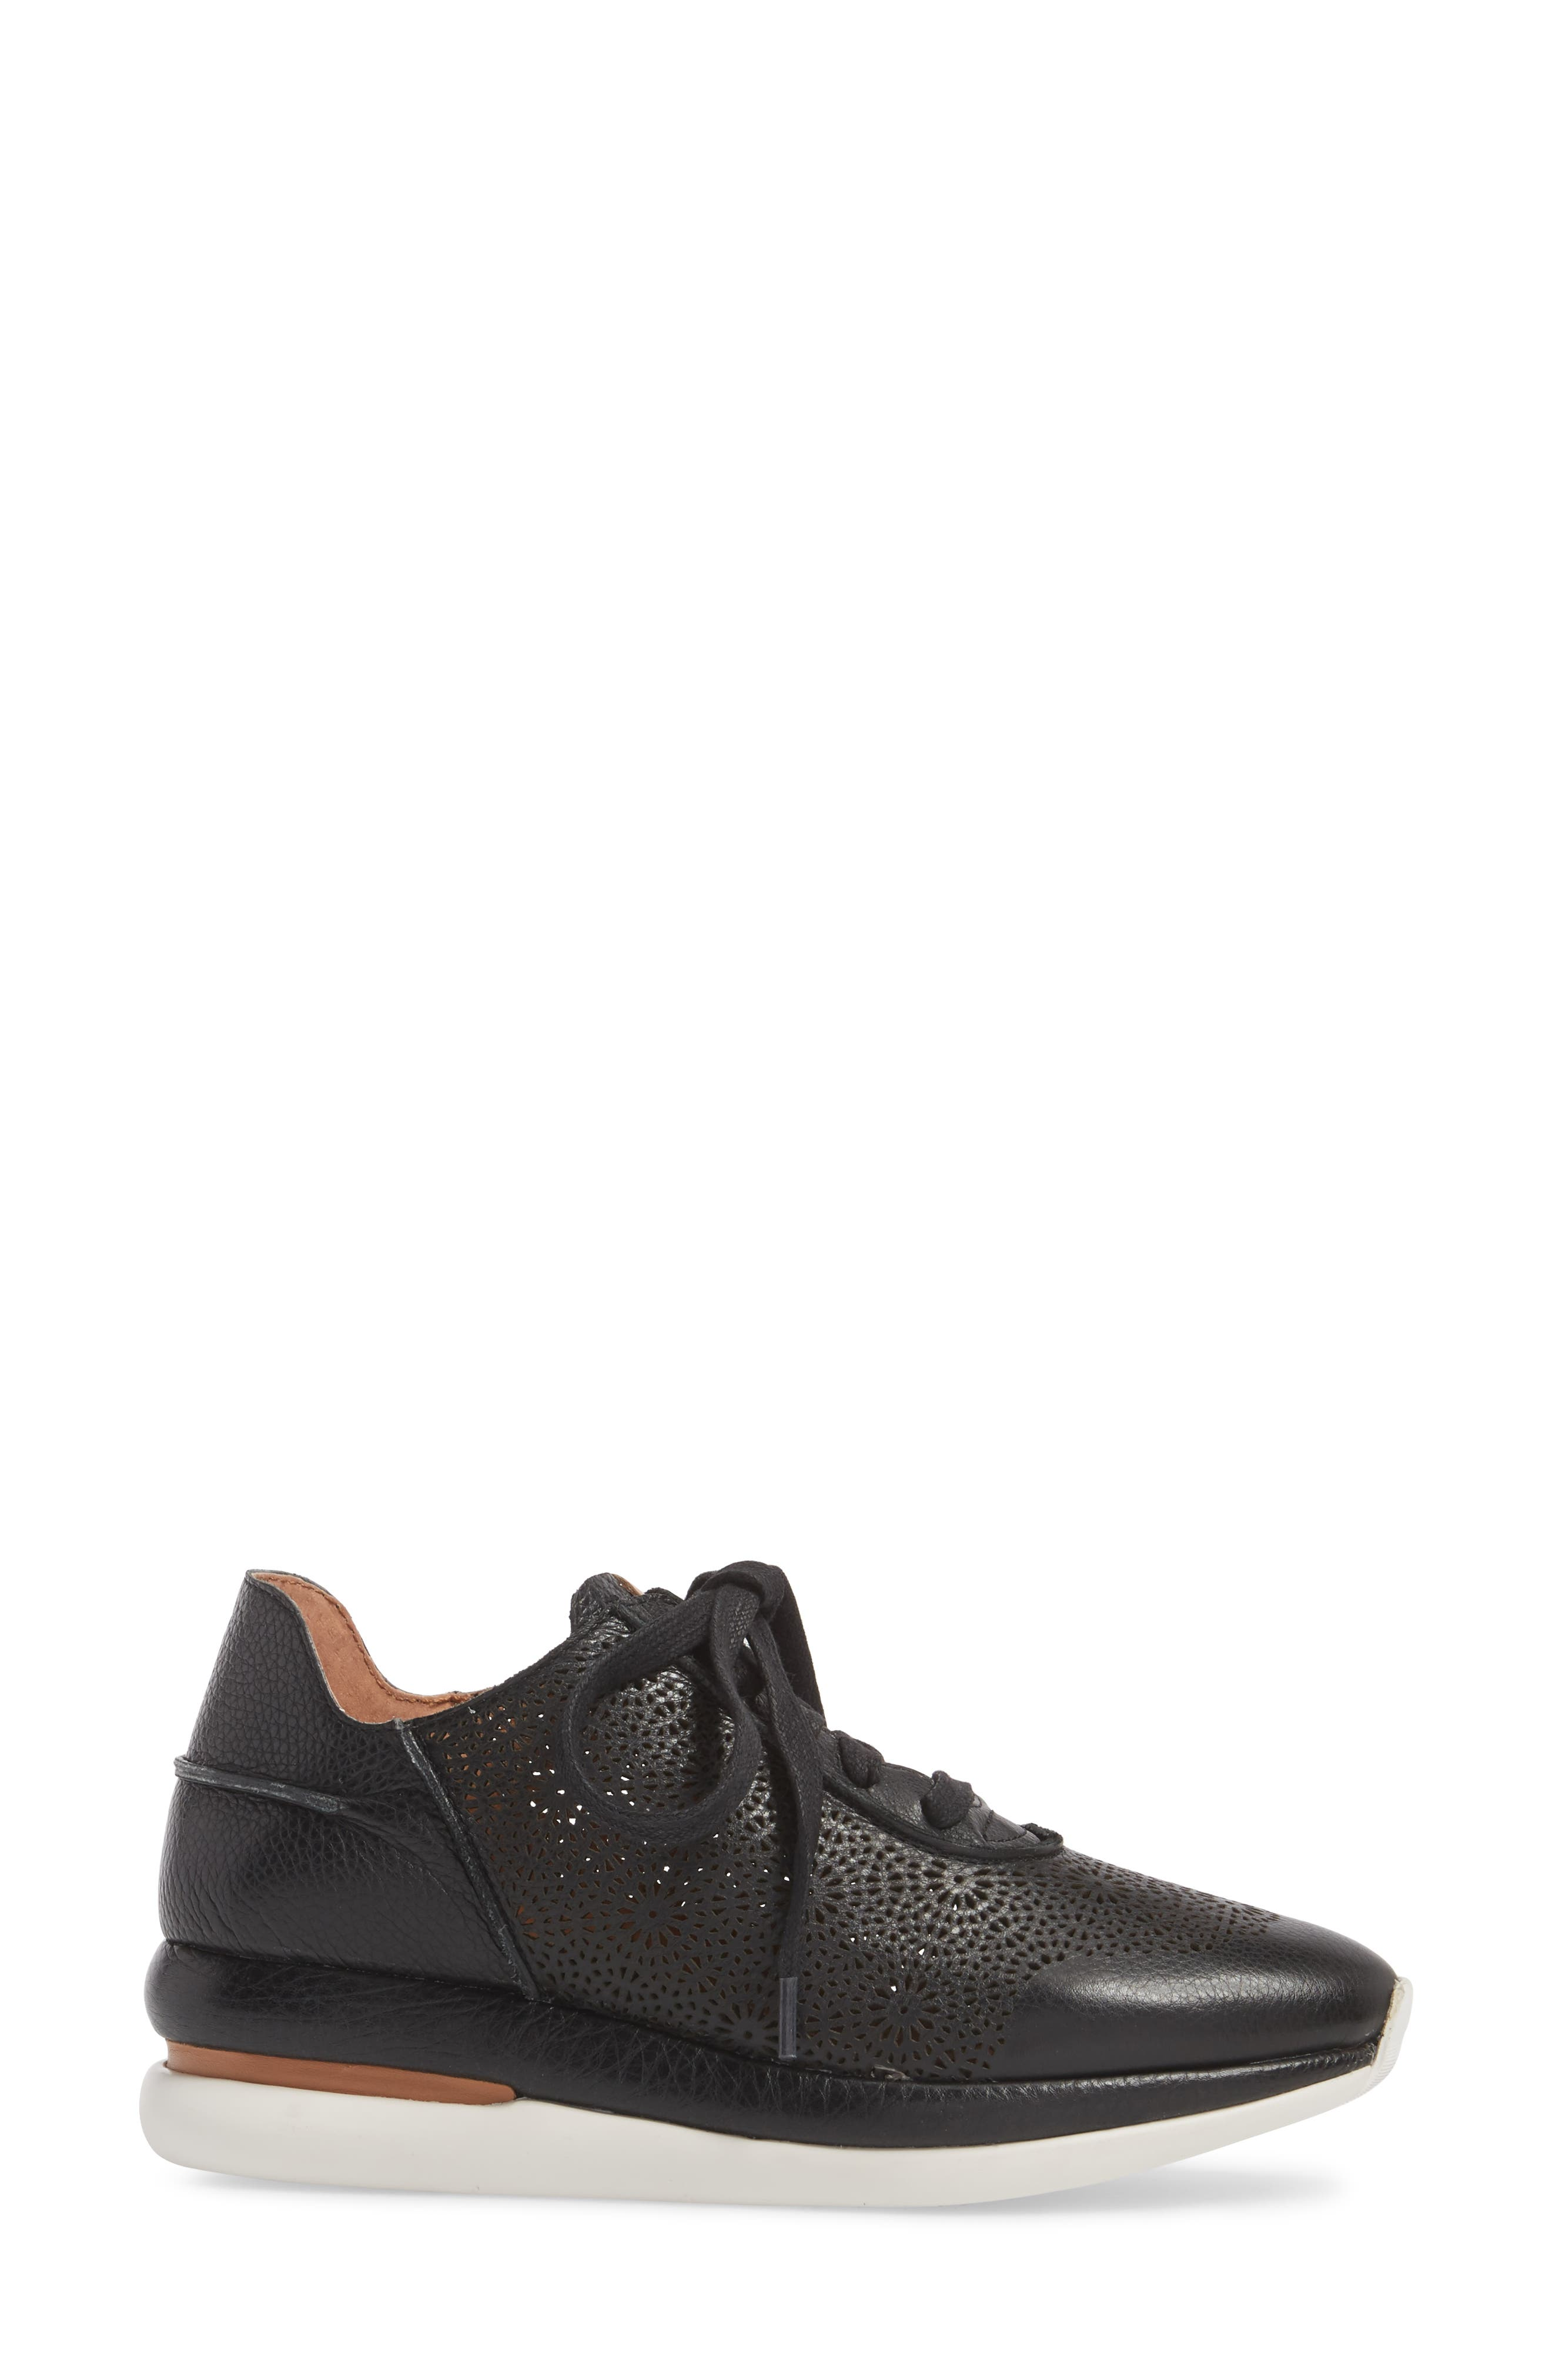 GENTLE SOULS BY KENNETH COLE, Raina II Sneaker, Alternate thumbnail 3, color, BLACK LEATHER